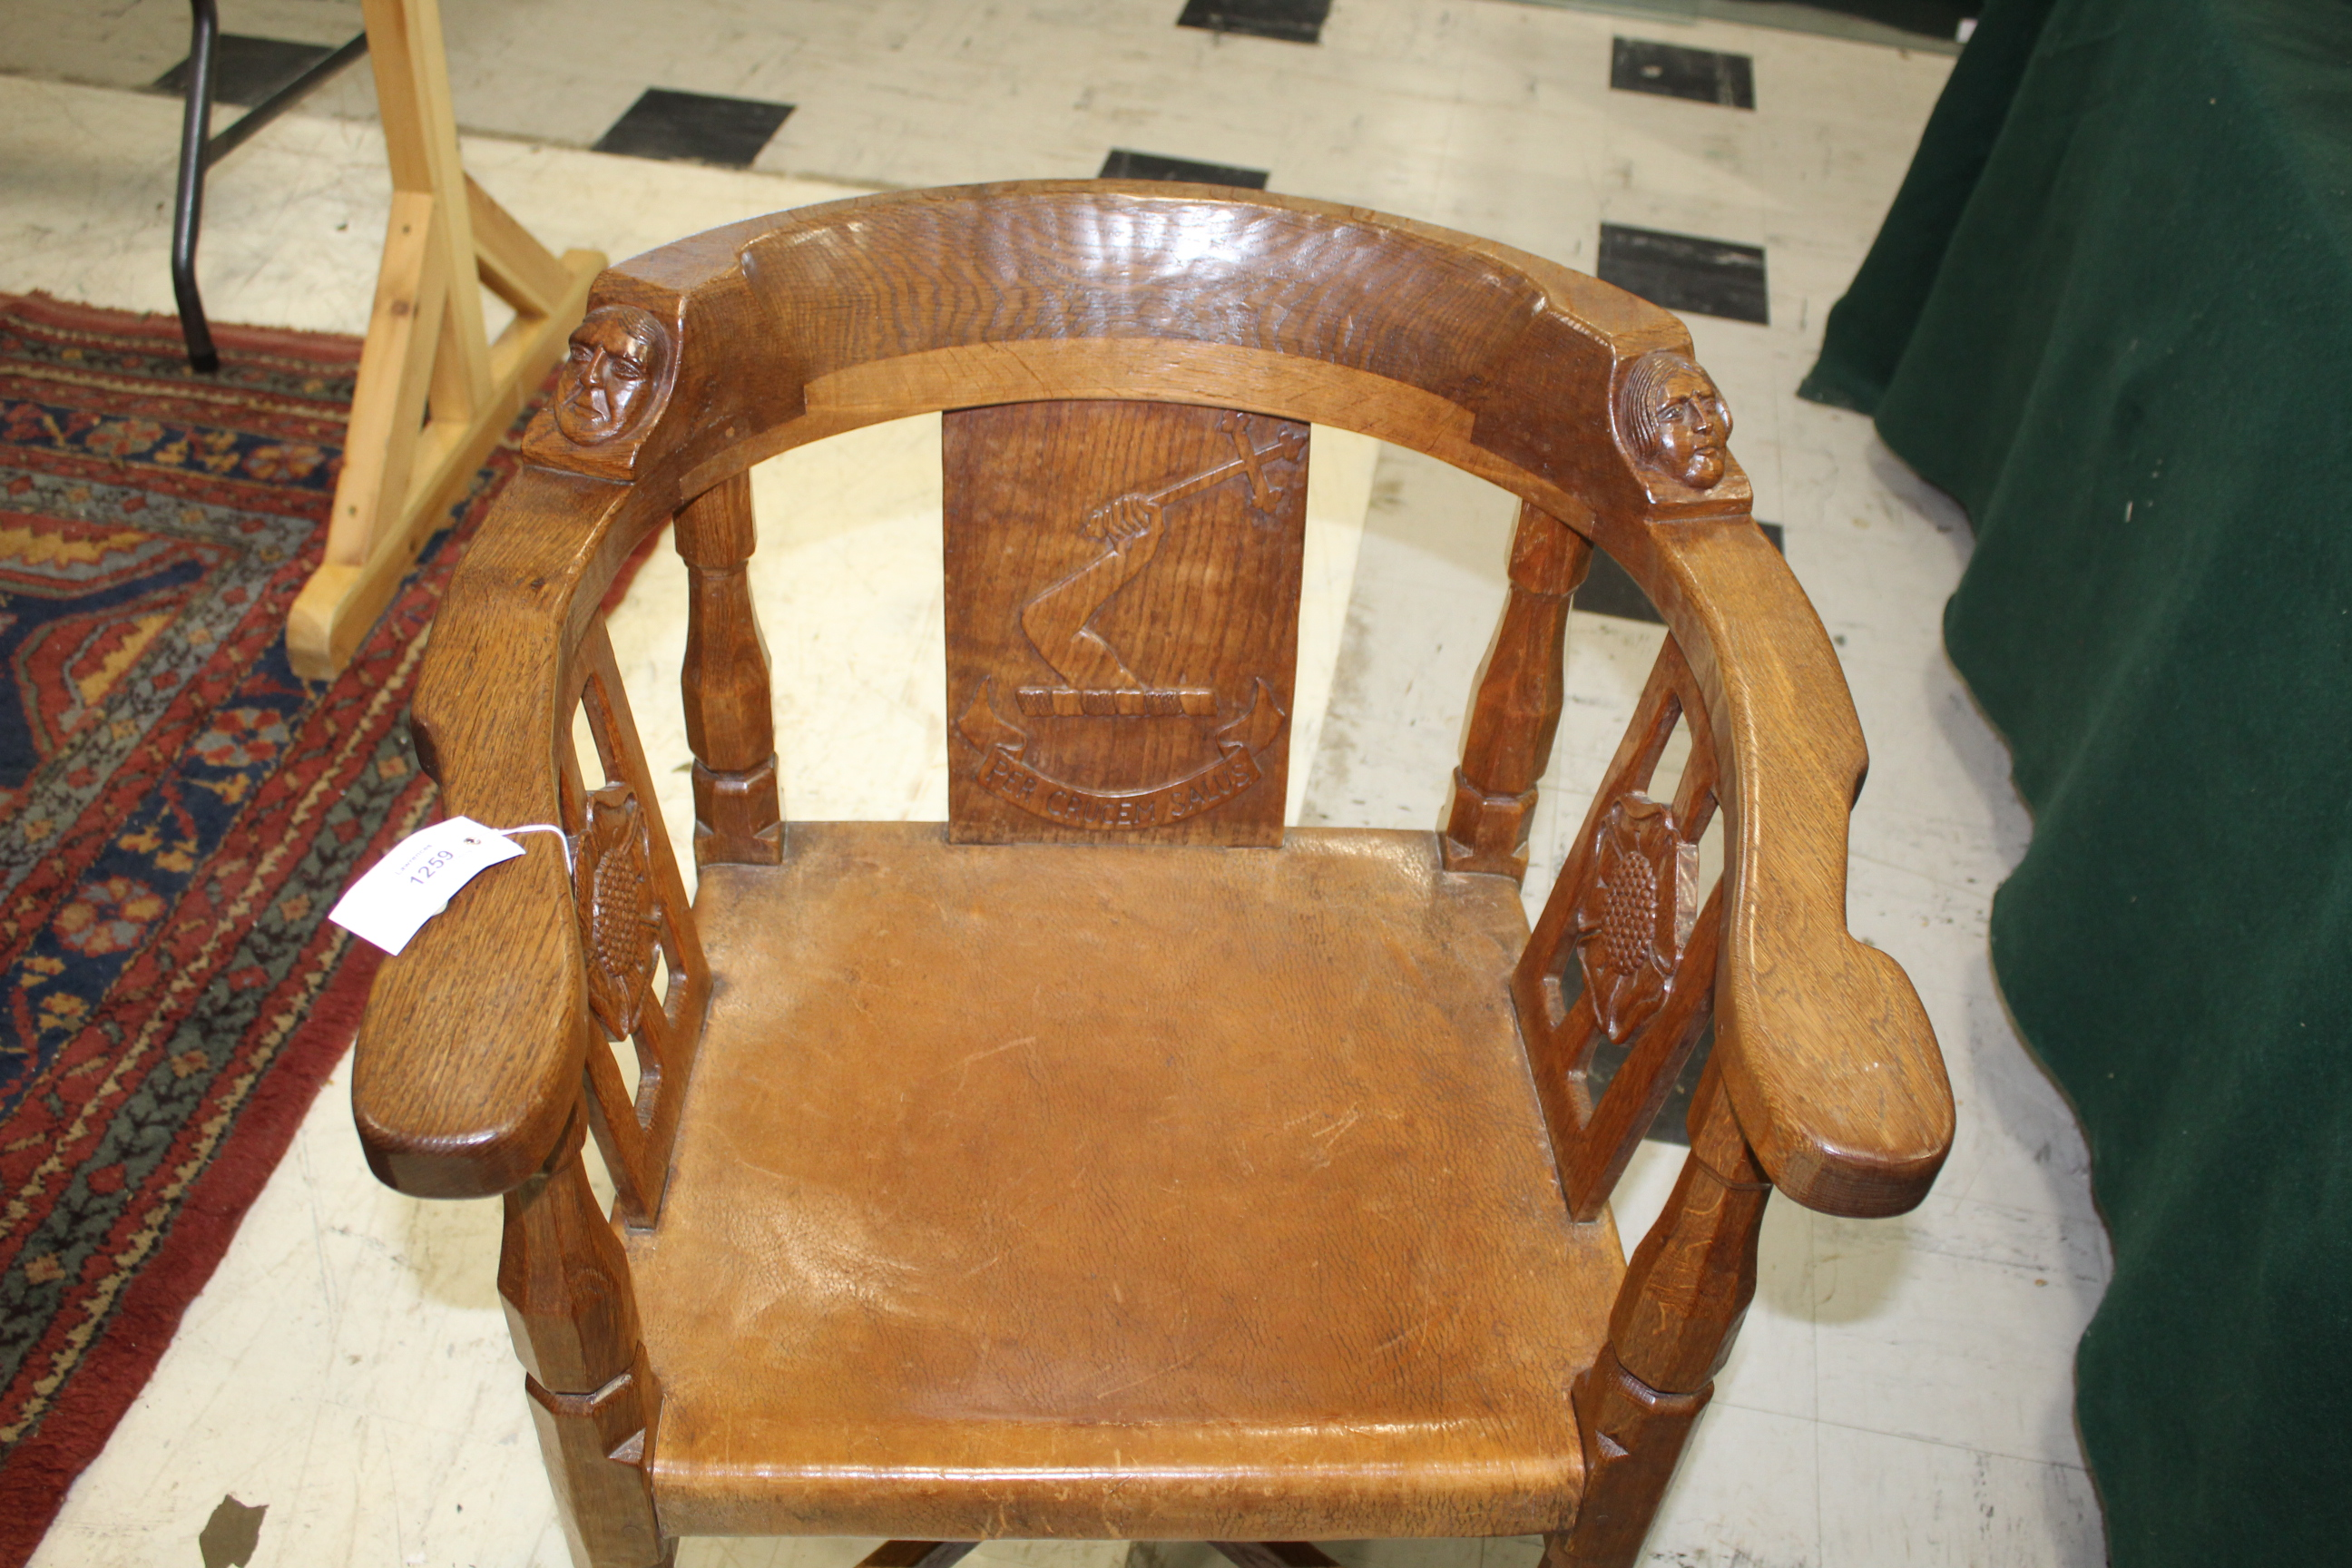 ROBERT THOMPSON OF KILBURN - MOUSEMAN MONKS CHAIR a circa 1920s/1930s oak Monk's armchair with a - Image 20 of 27